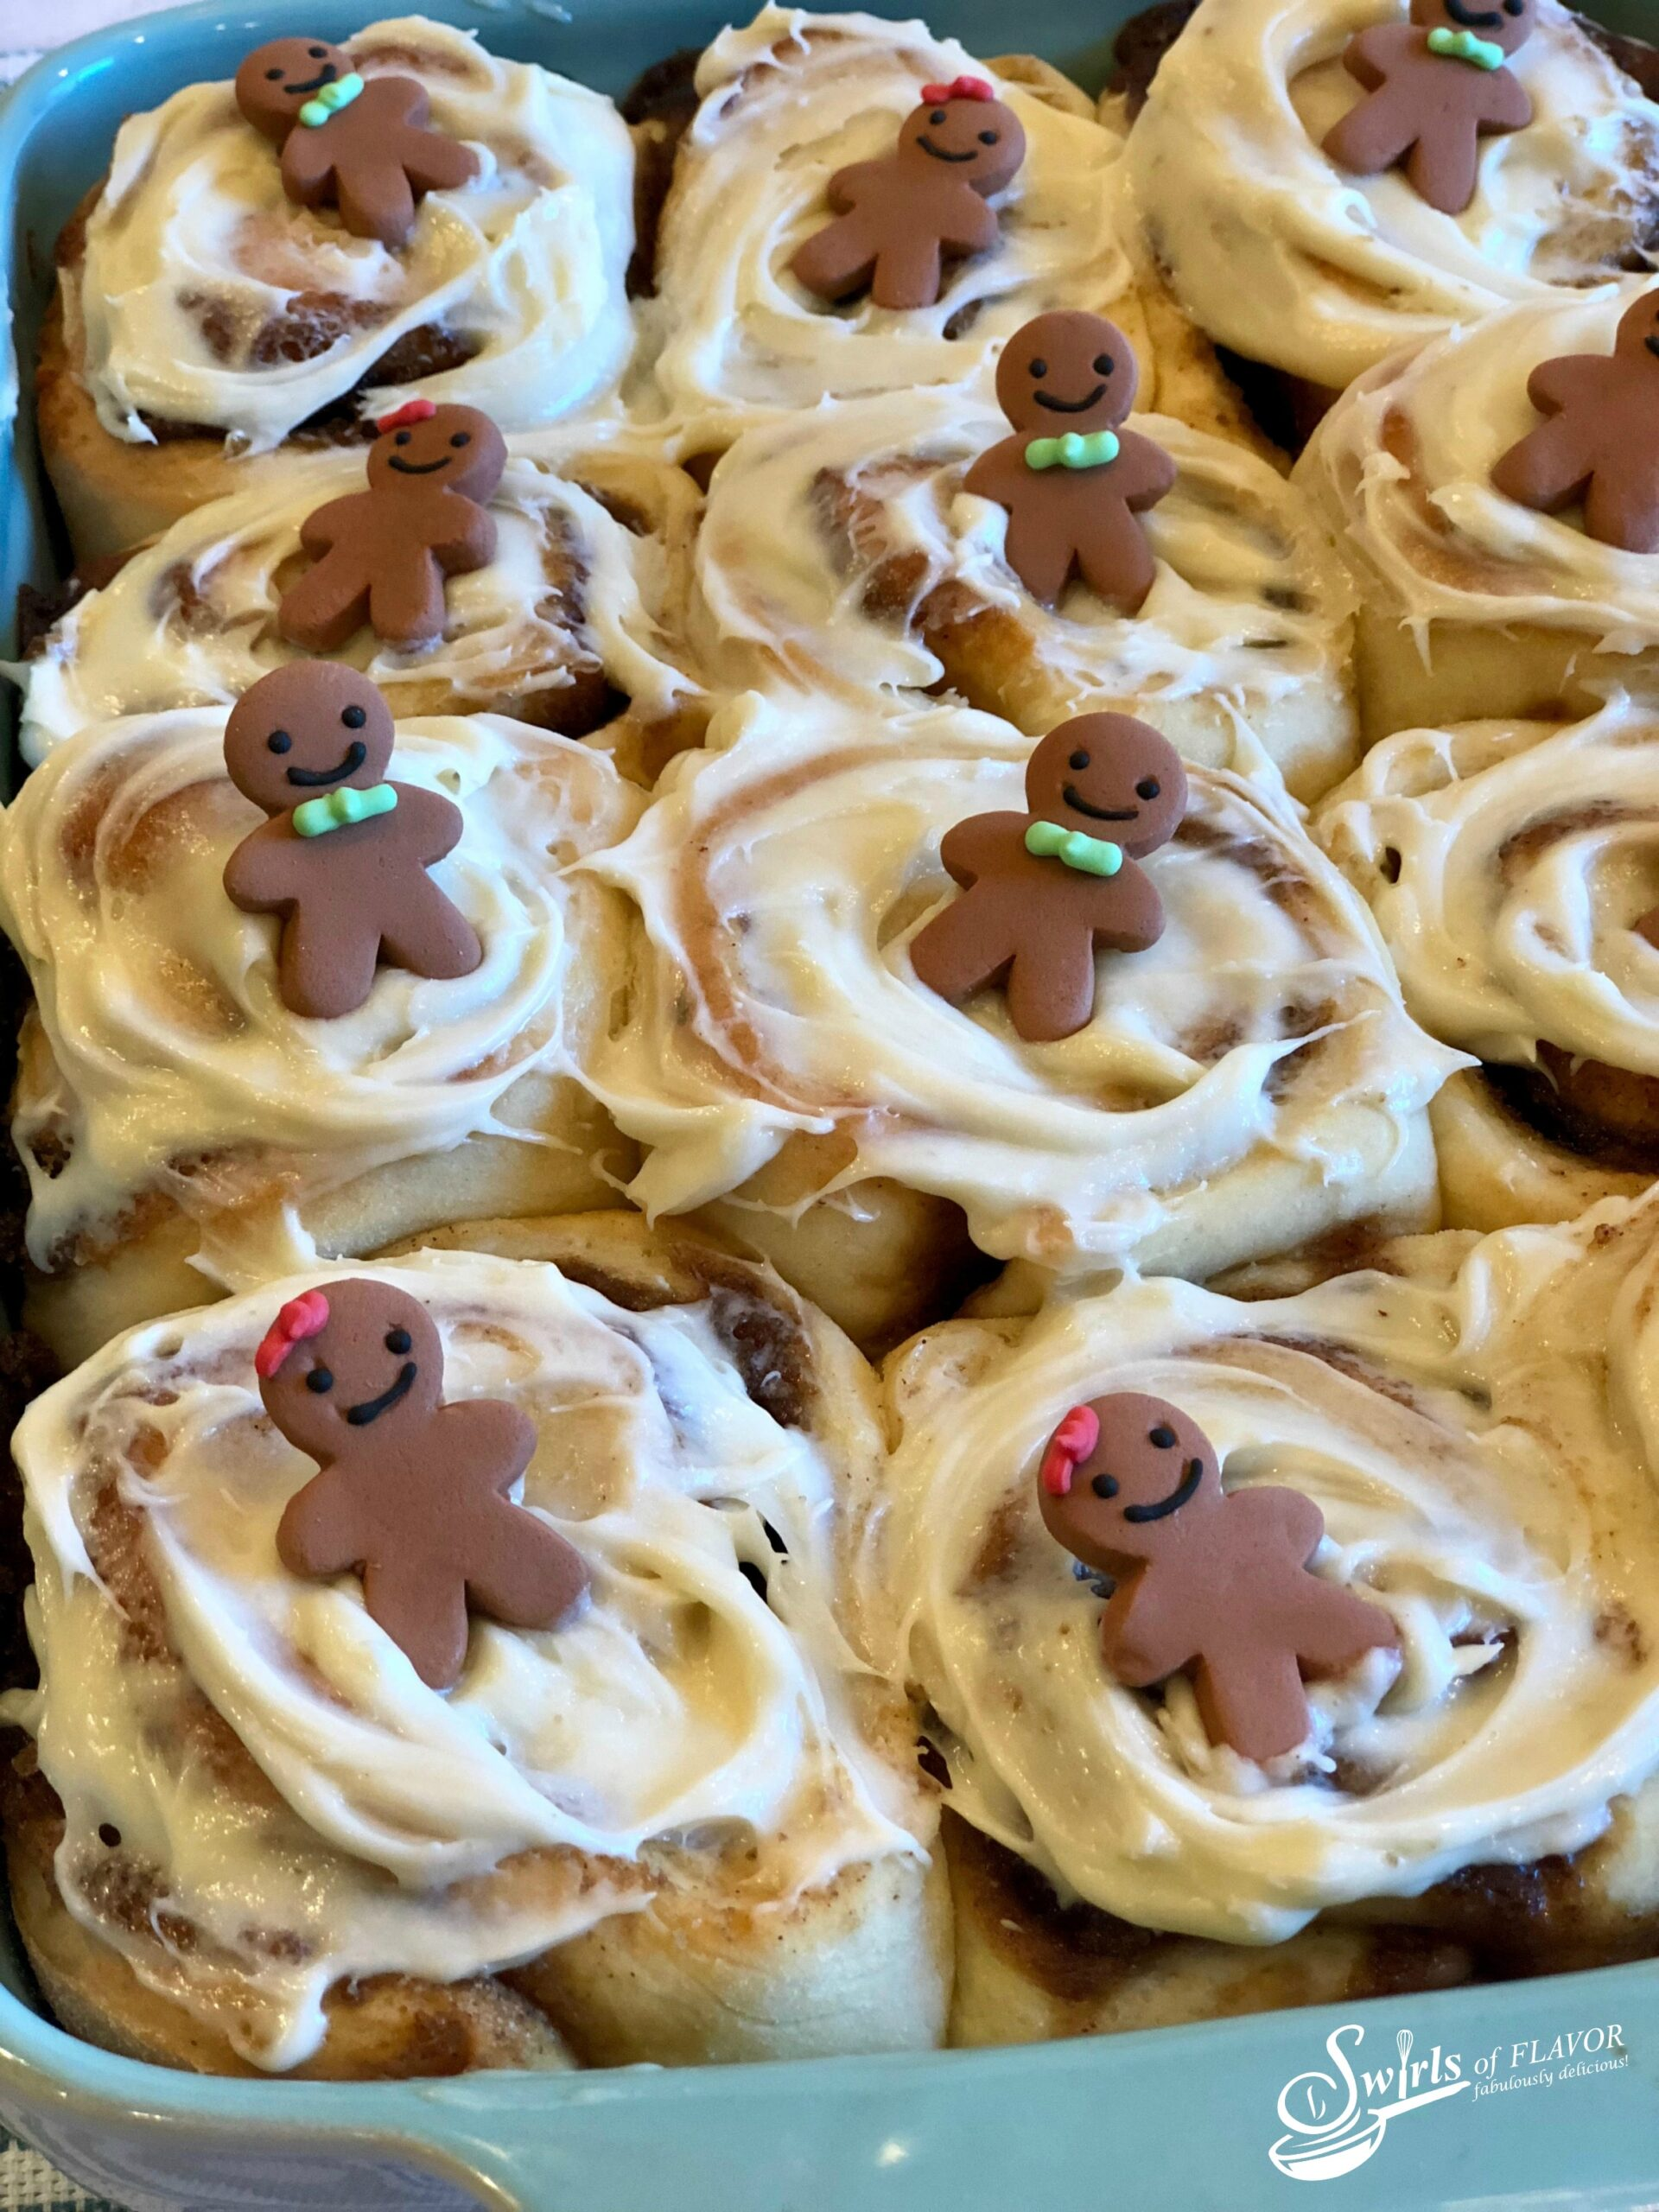 Gingerbread Cinnamon Rolls and Christmas morning and are a perfect match. Our Christmas Cinnamon Rolls is an easy recipe filled with gingerbread spices and brown sugar and topped with a silky cream cheese glaze.